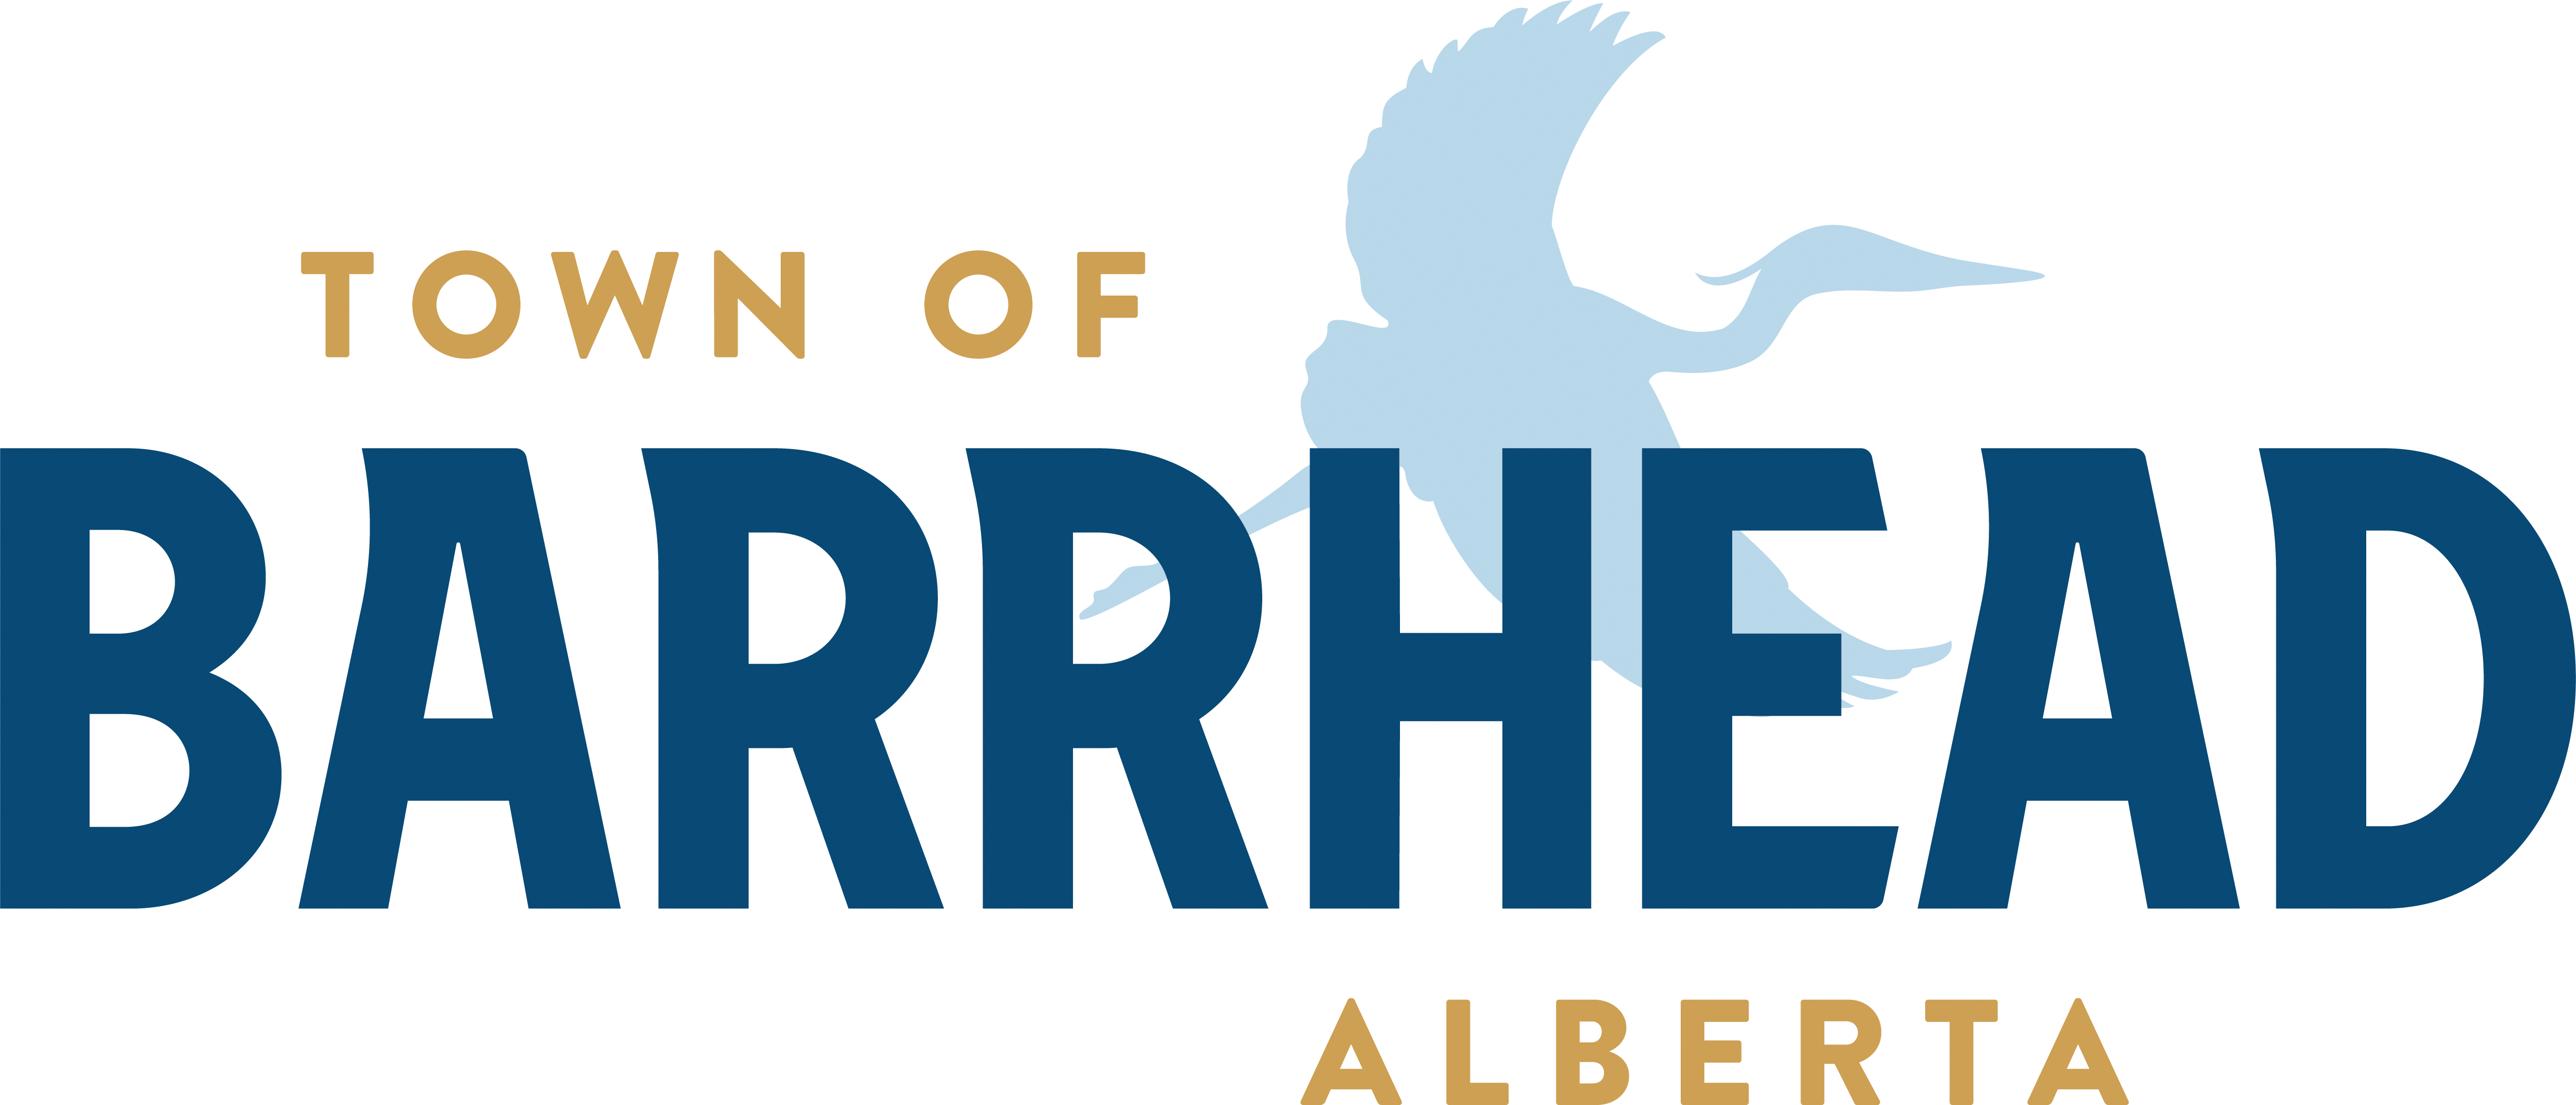 Town of Barrhead Logo with blue heron